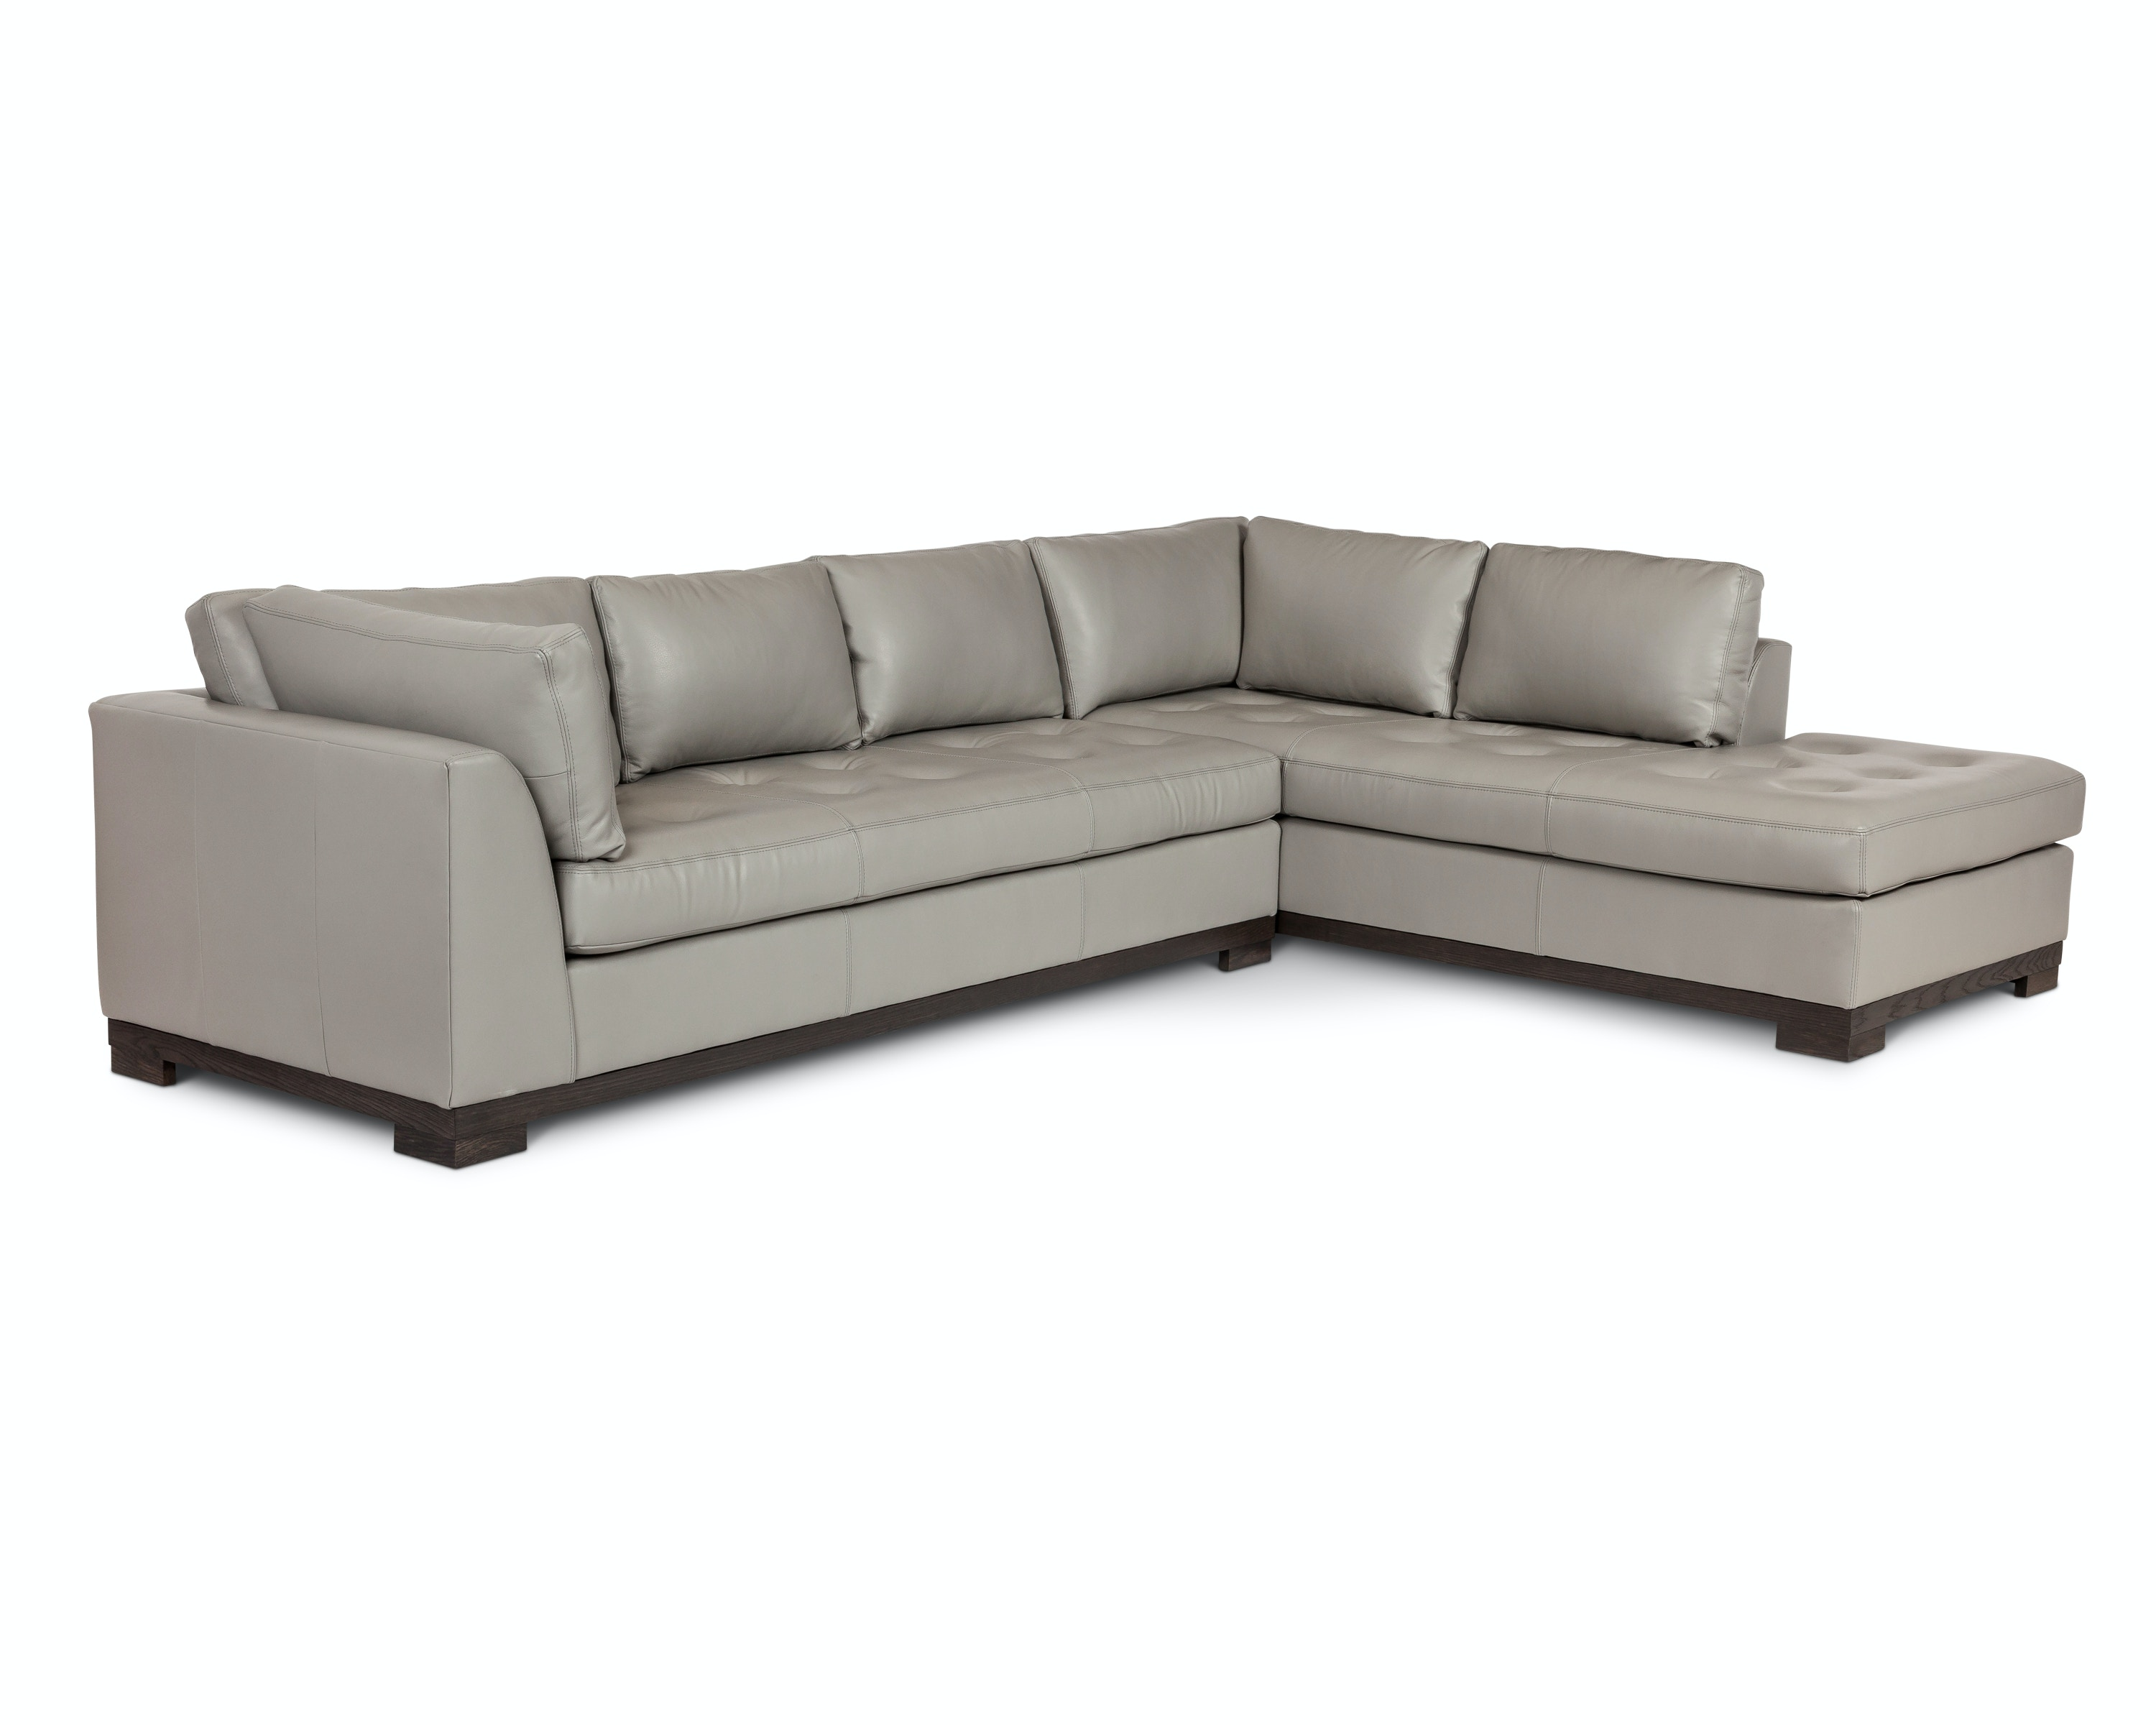 Perfect Saddleworks E ALINEA LEFT ARM SOFA SL22058AL80 From Walter E. Smithe  Furniture + Design